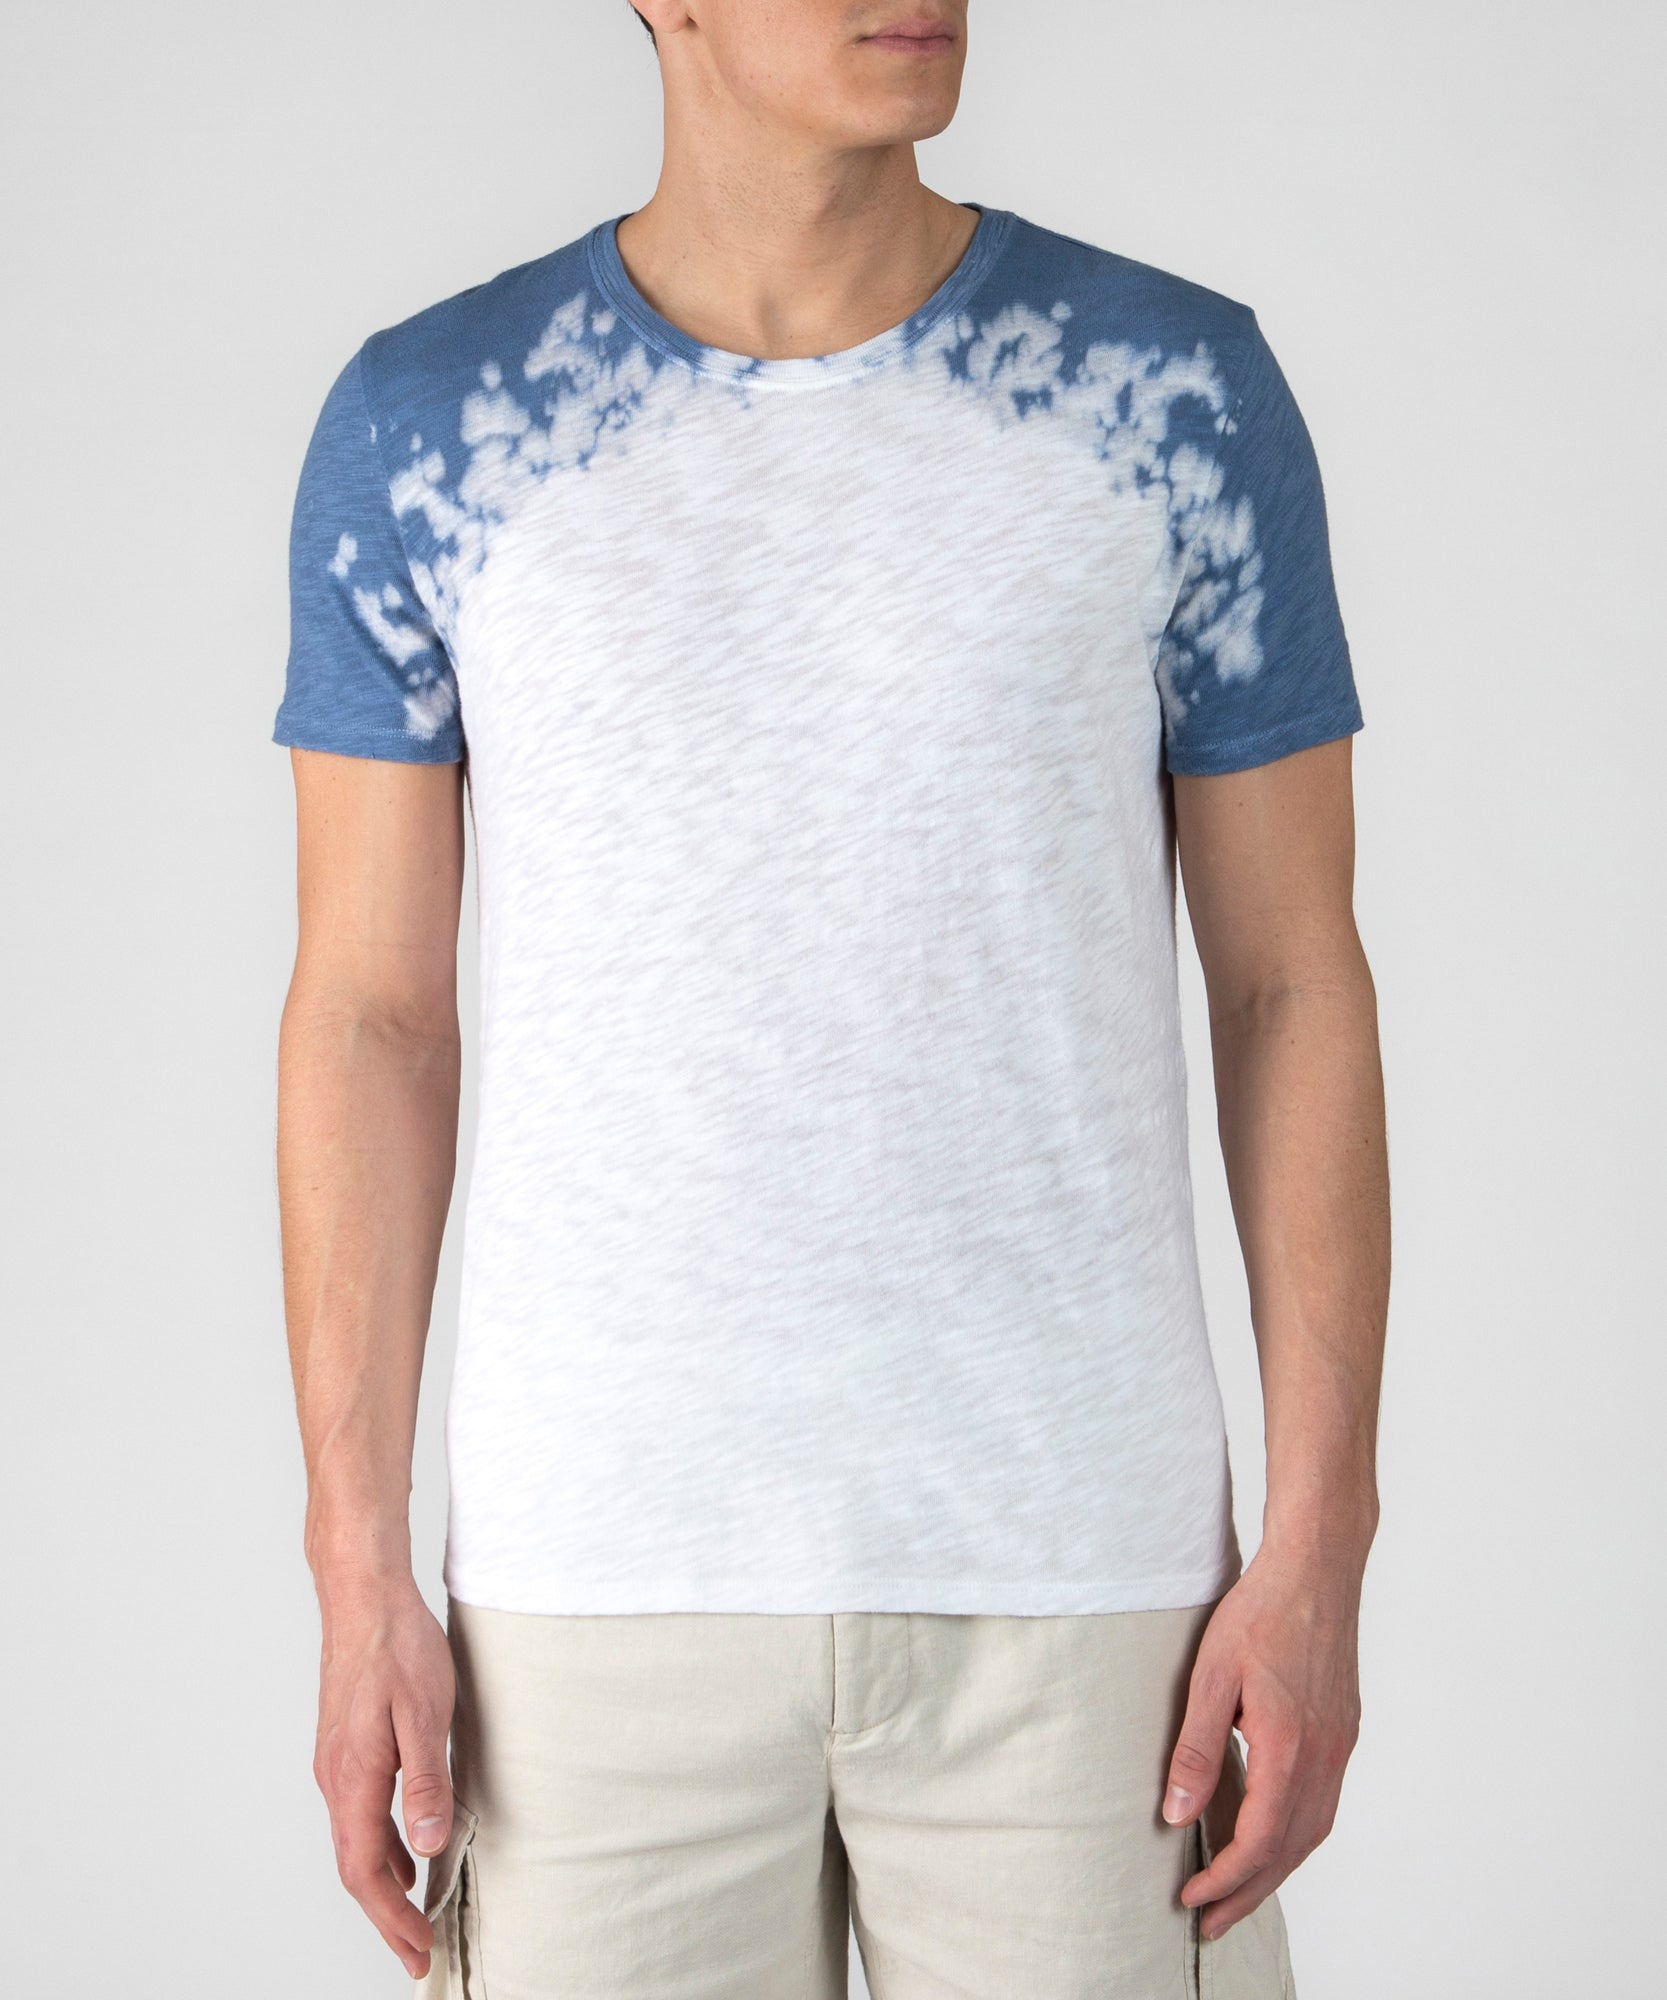 White and Chambray Blue Combo Dip Dye Slub Jersey Crew Neck Tee - Men's Cotton Short Sleeve Tee by ATM Anthony Thomas Melillo